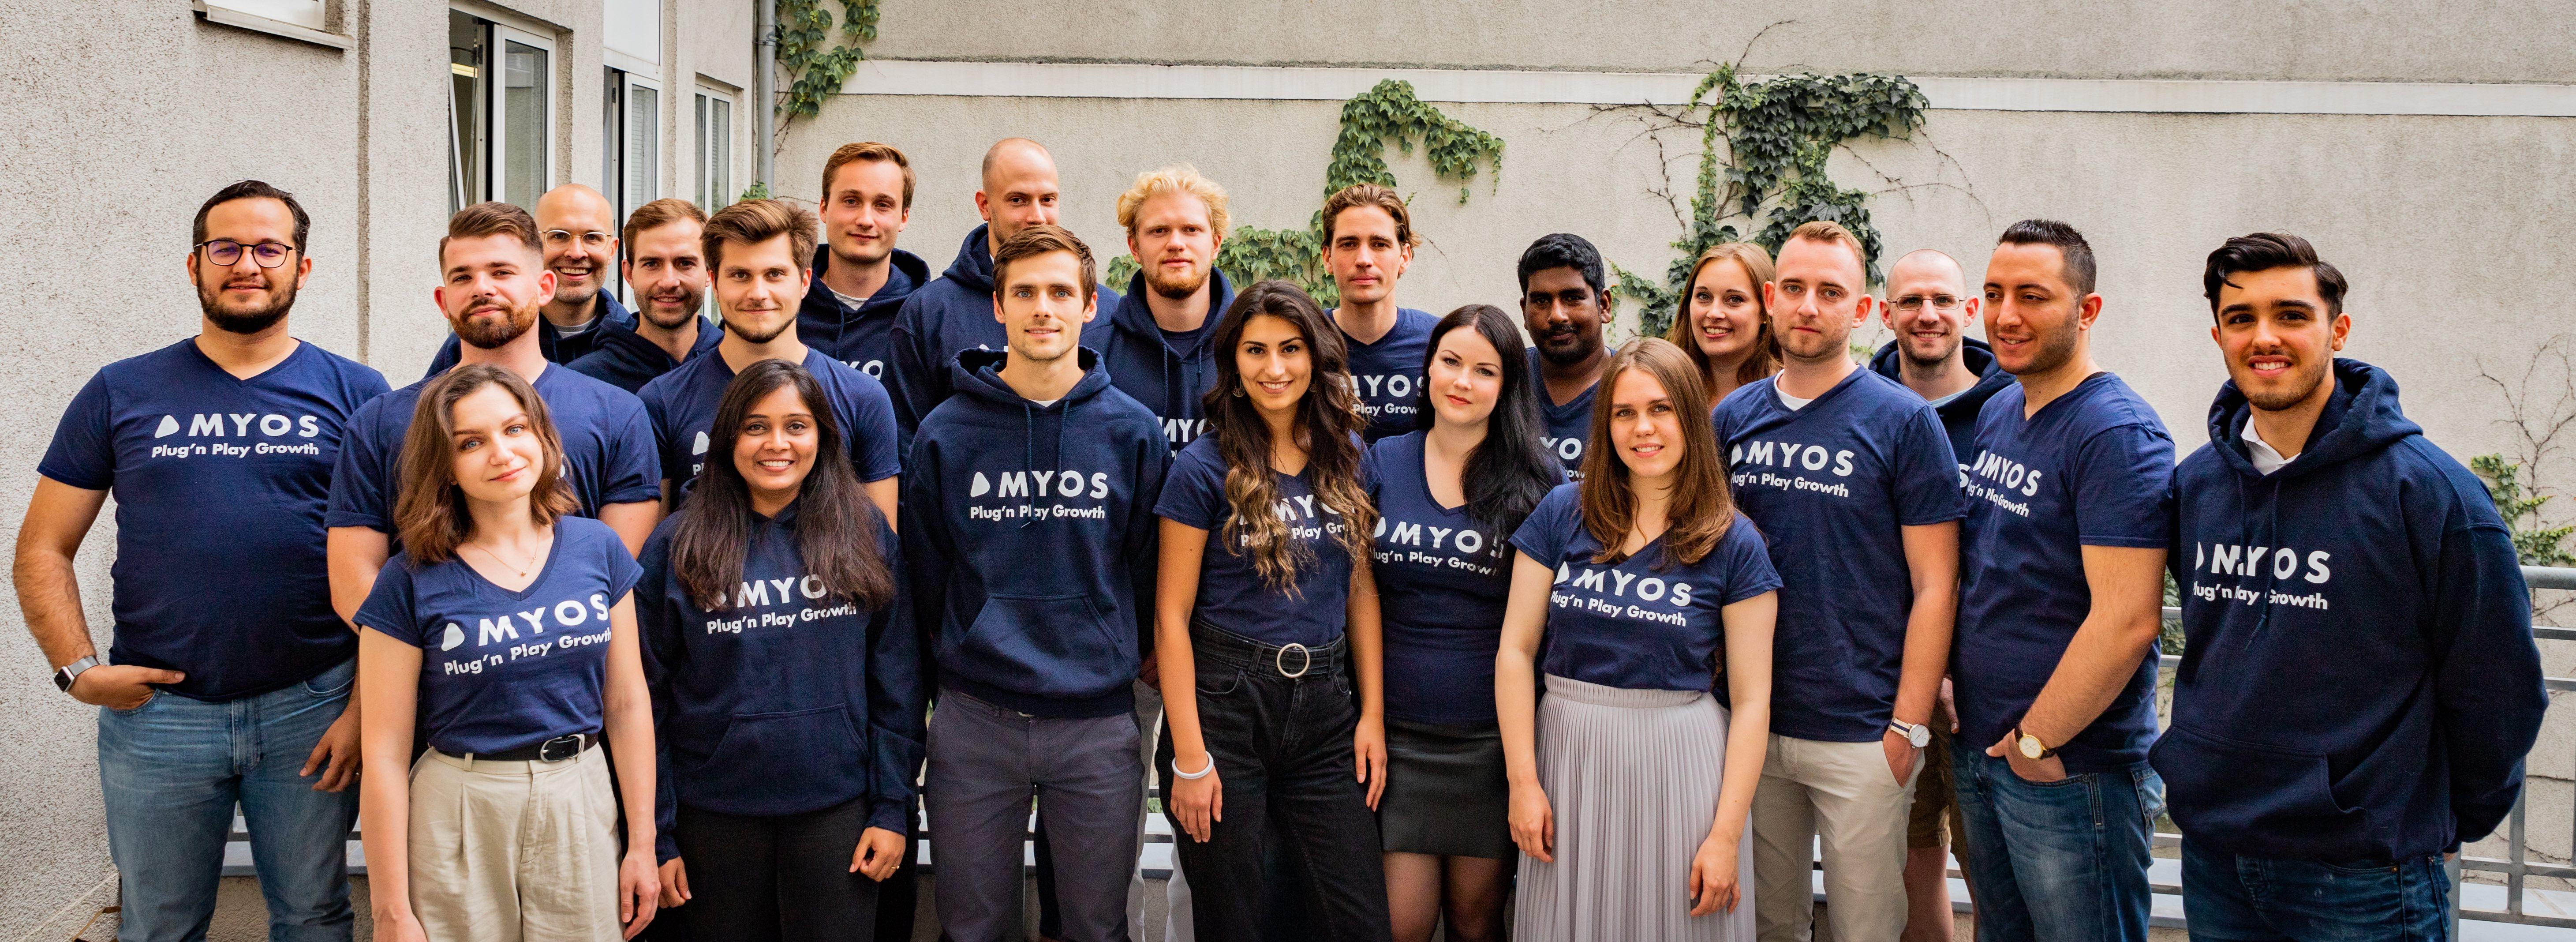 Myos_Team_Careers_Myos_Financing_FBA